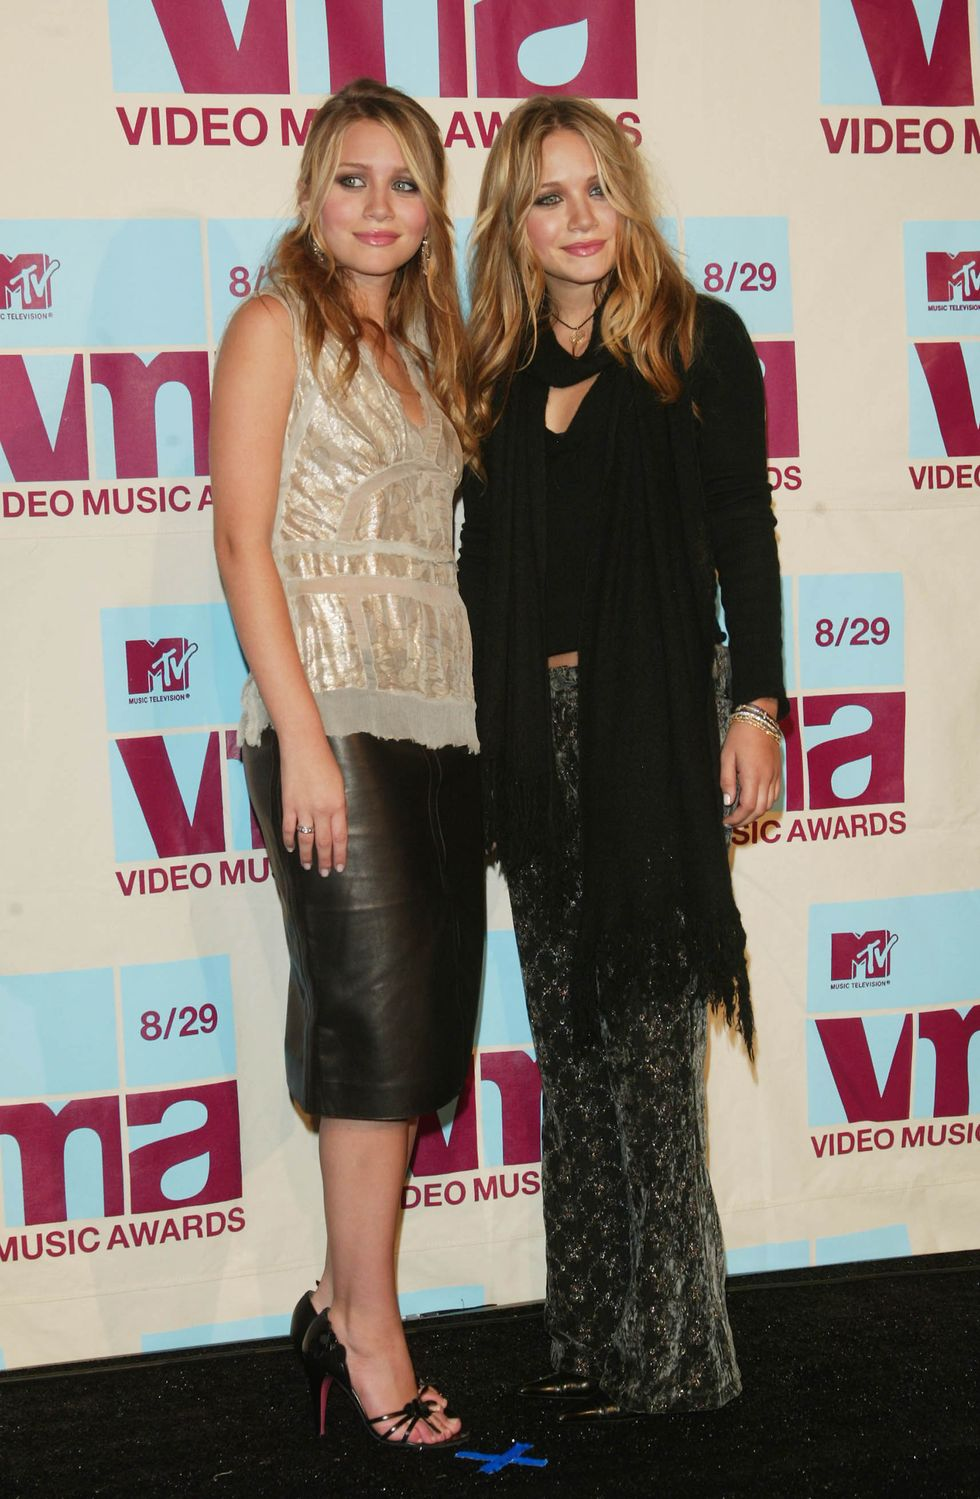 August 29, 2002 For the 2002 Video Music Awards, Ashley wore a metallic camisole and leather skirt, while Mary-Kate opted for a black top and printed velvet pants.